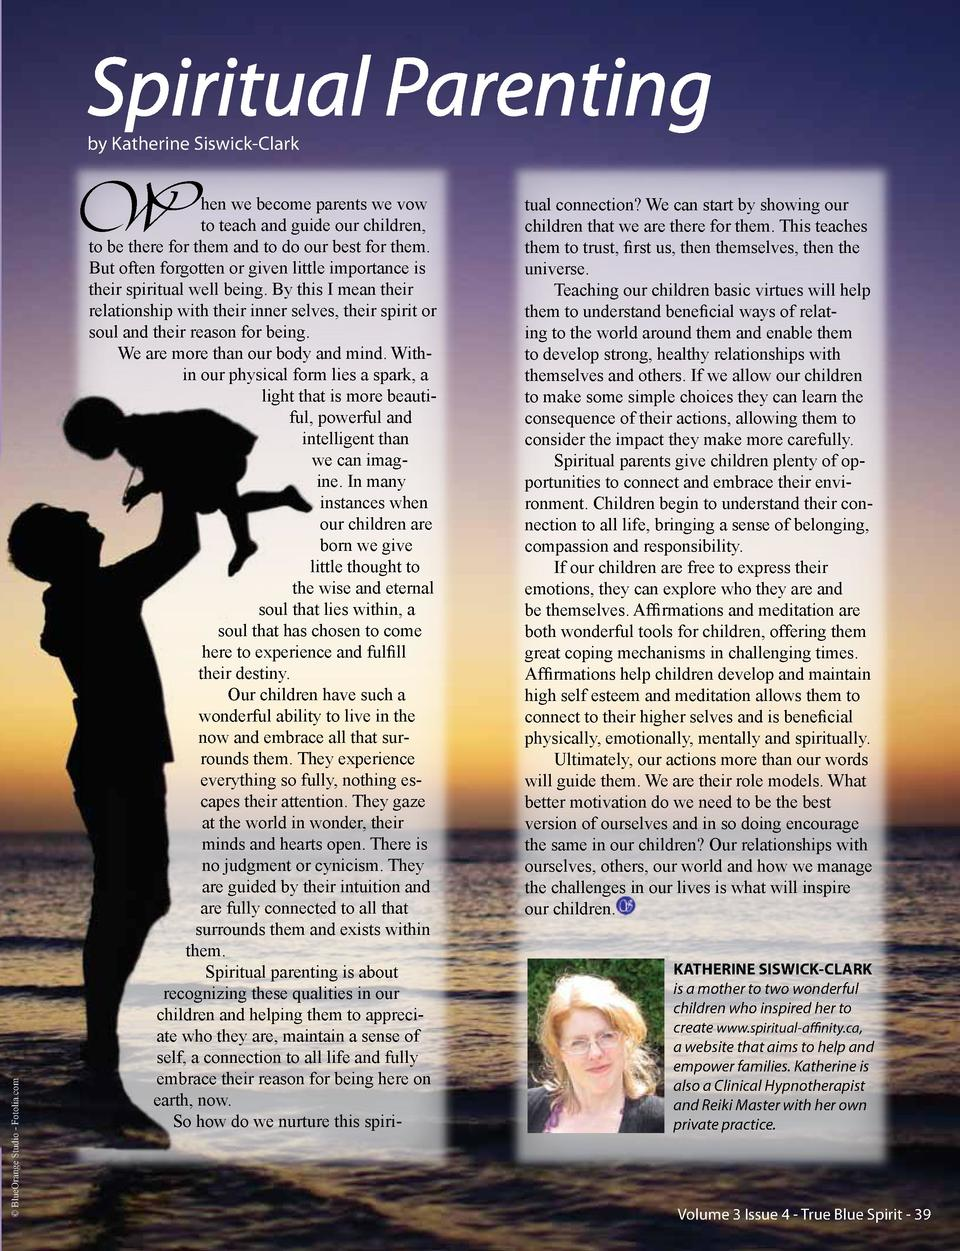 Spiritual Parenting by Katherine Siswick-Clark     BlueOrange Studio - Fotolia.com  W  hen we become parents we vow to tea...